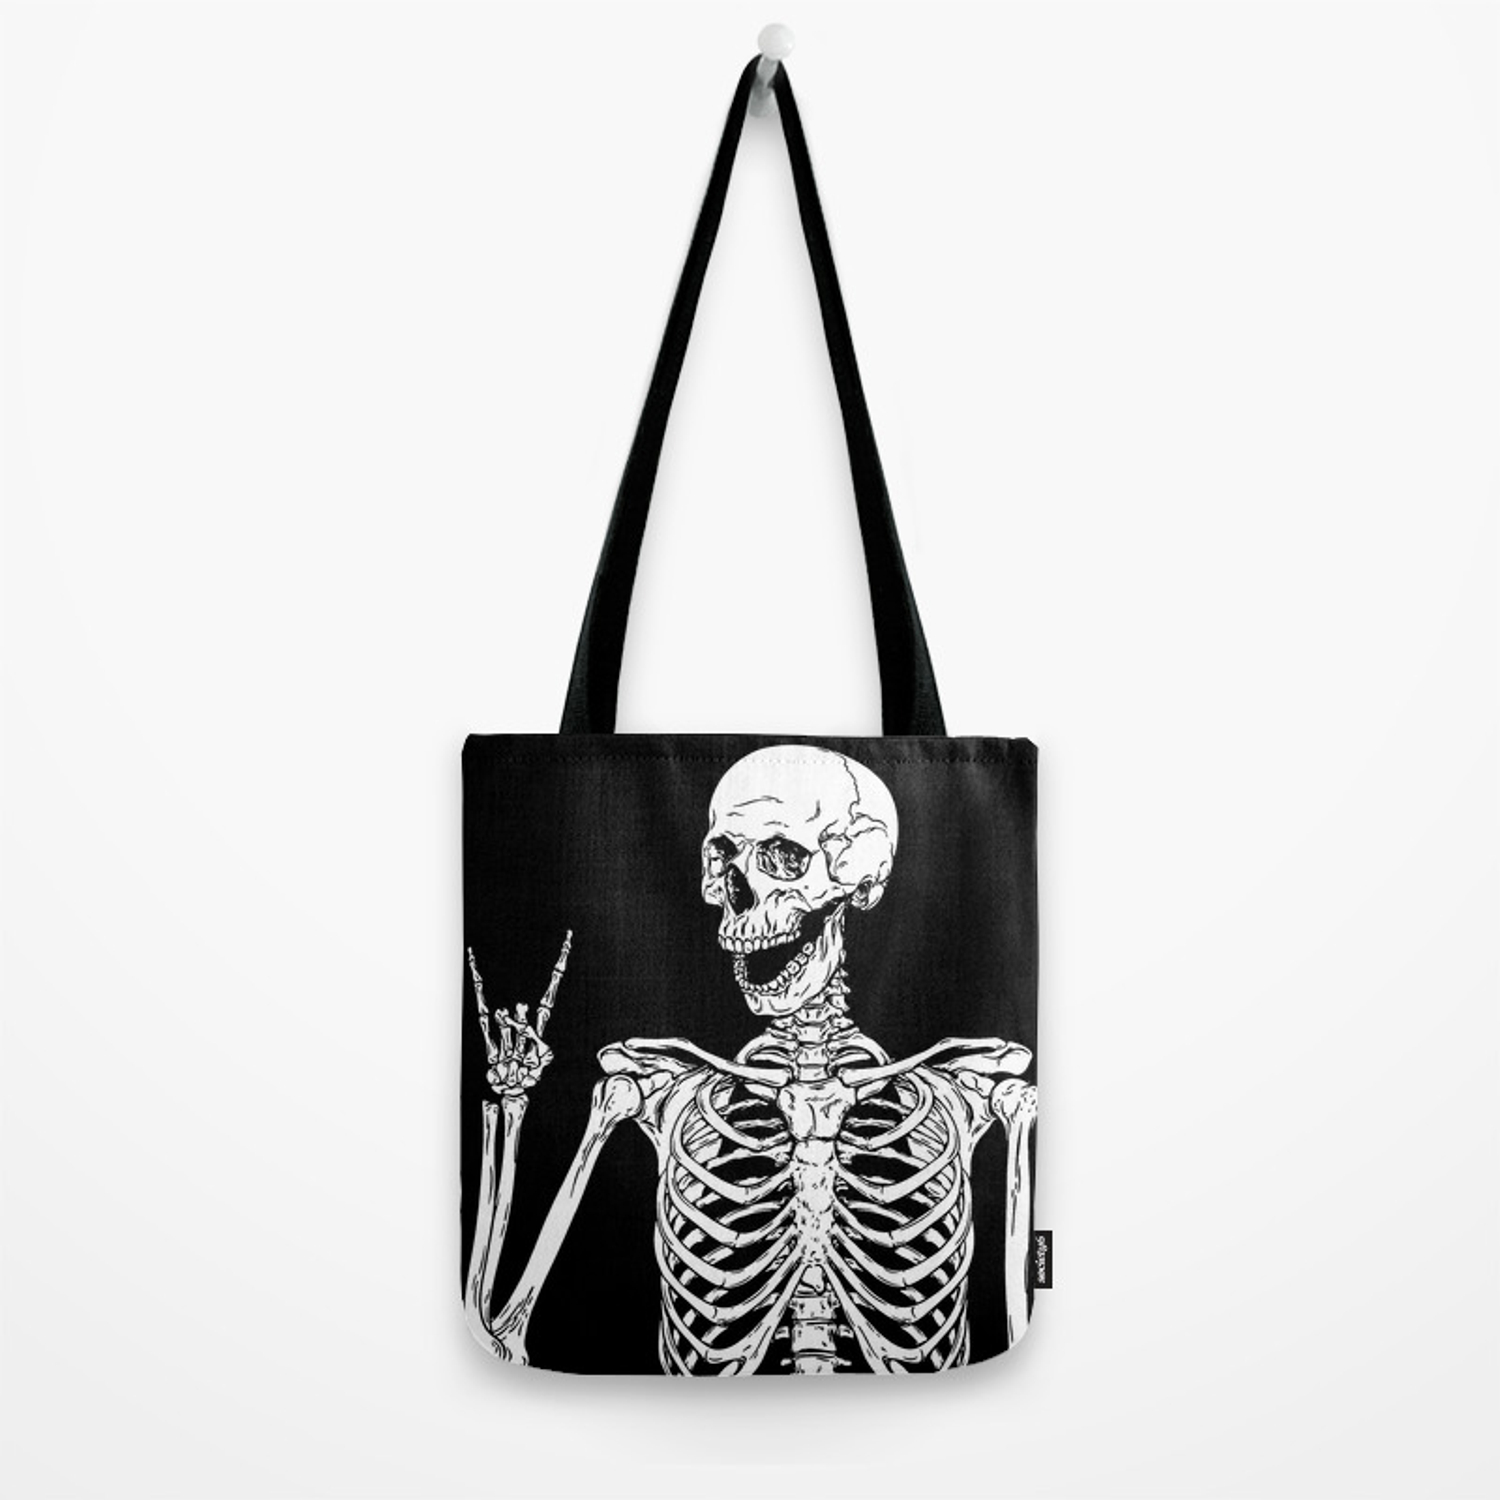 Rock /& Roll Skeleton Fingers New Small Lightweight Drawstring Tote Gift Loot Bags Events Musicians Party